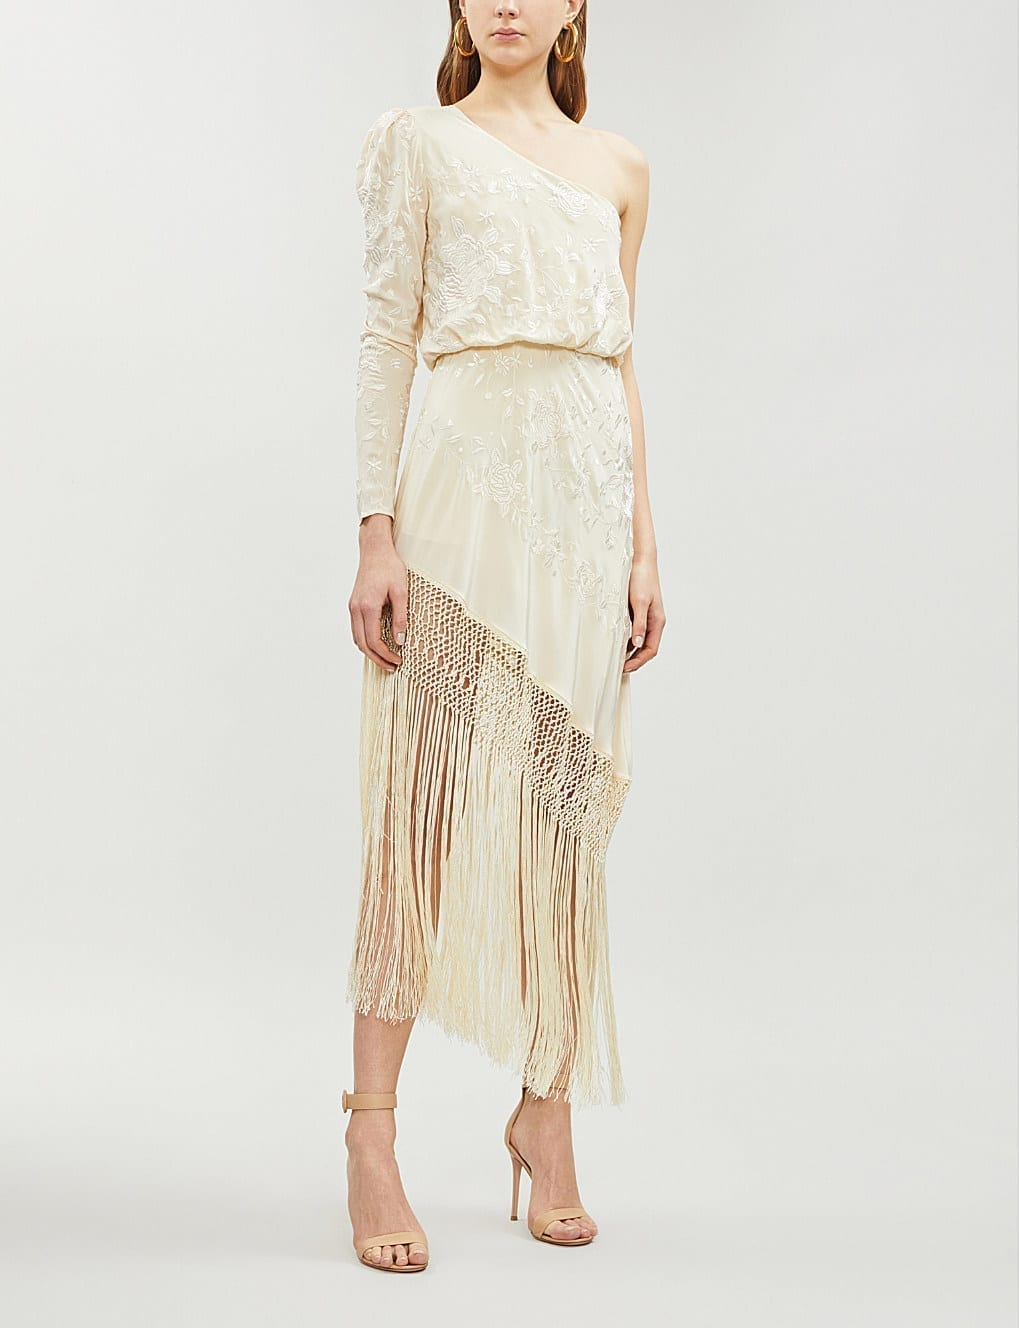 JOHANNA ORTIZ One-Shoulder Asymmetric Fringed Embroidered Silk-Crepe Cream Dress